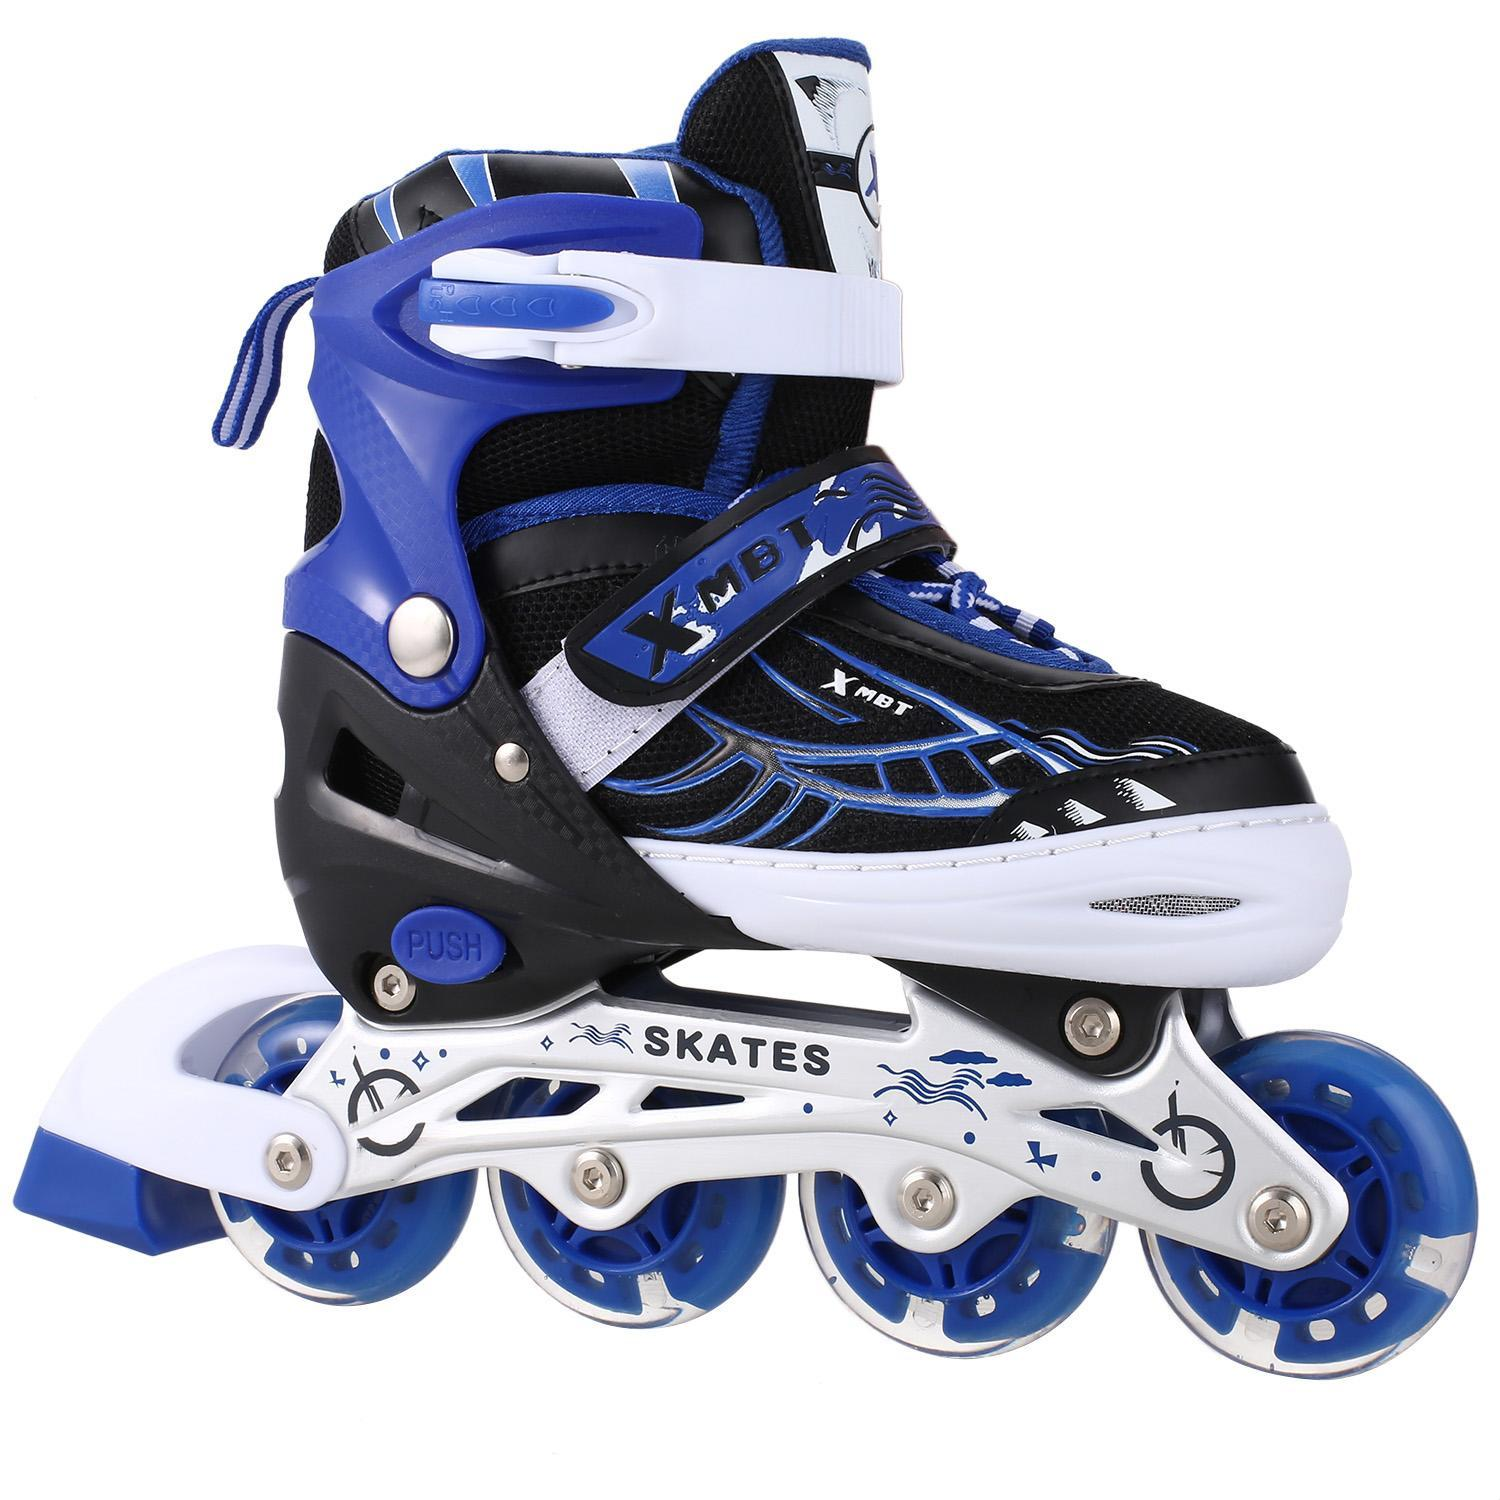 New Unisex PU Wheel PP Material Indoor Outdoor Roller Children Tracer Adjustable Inline Skate Elec